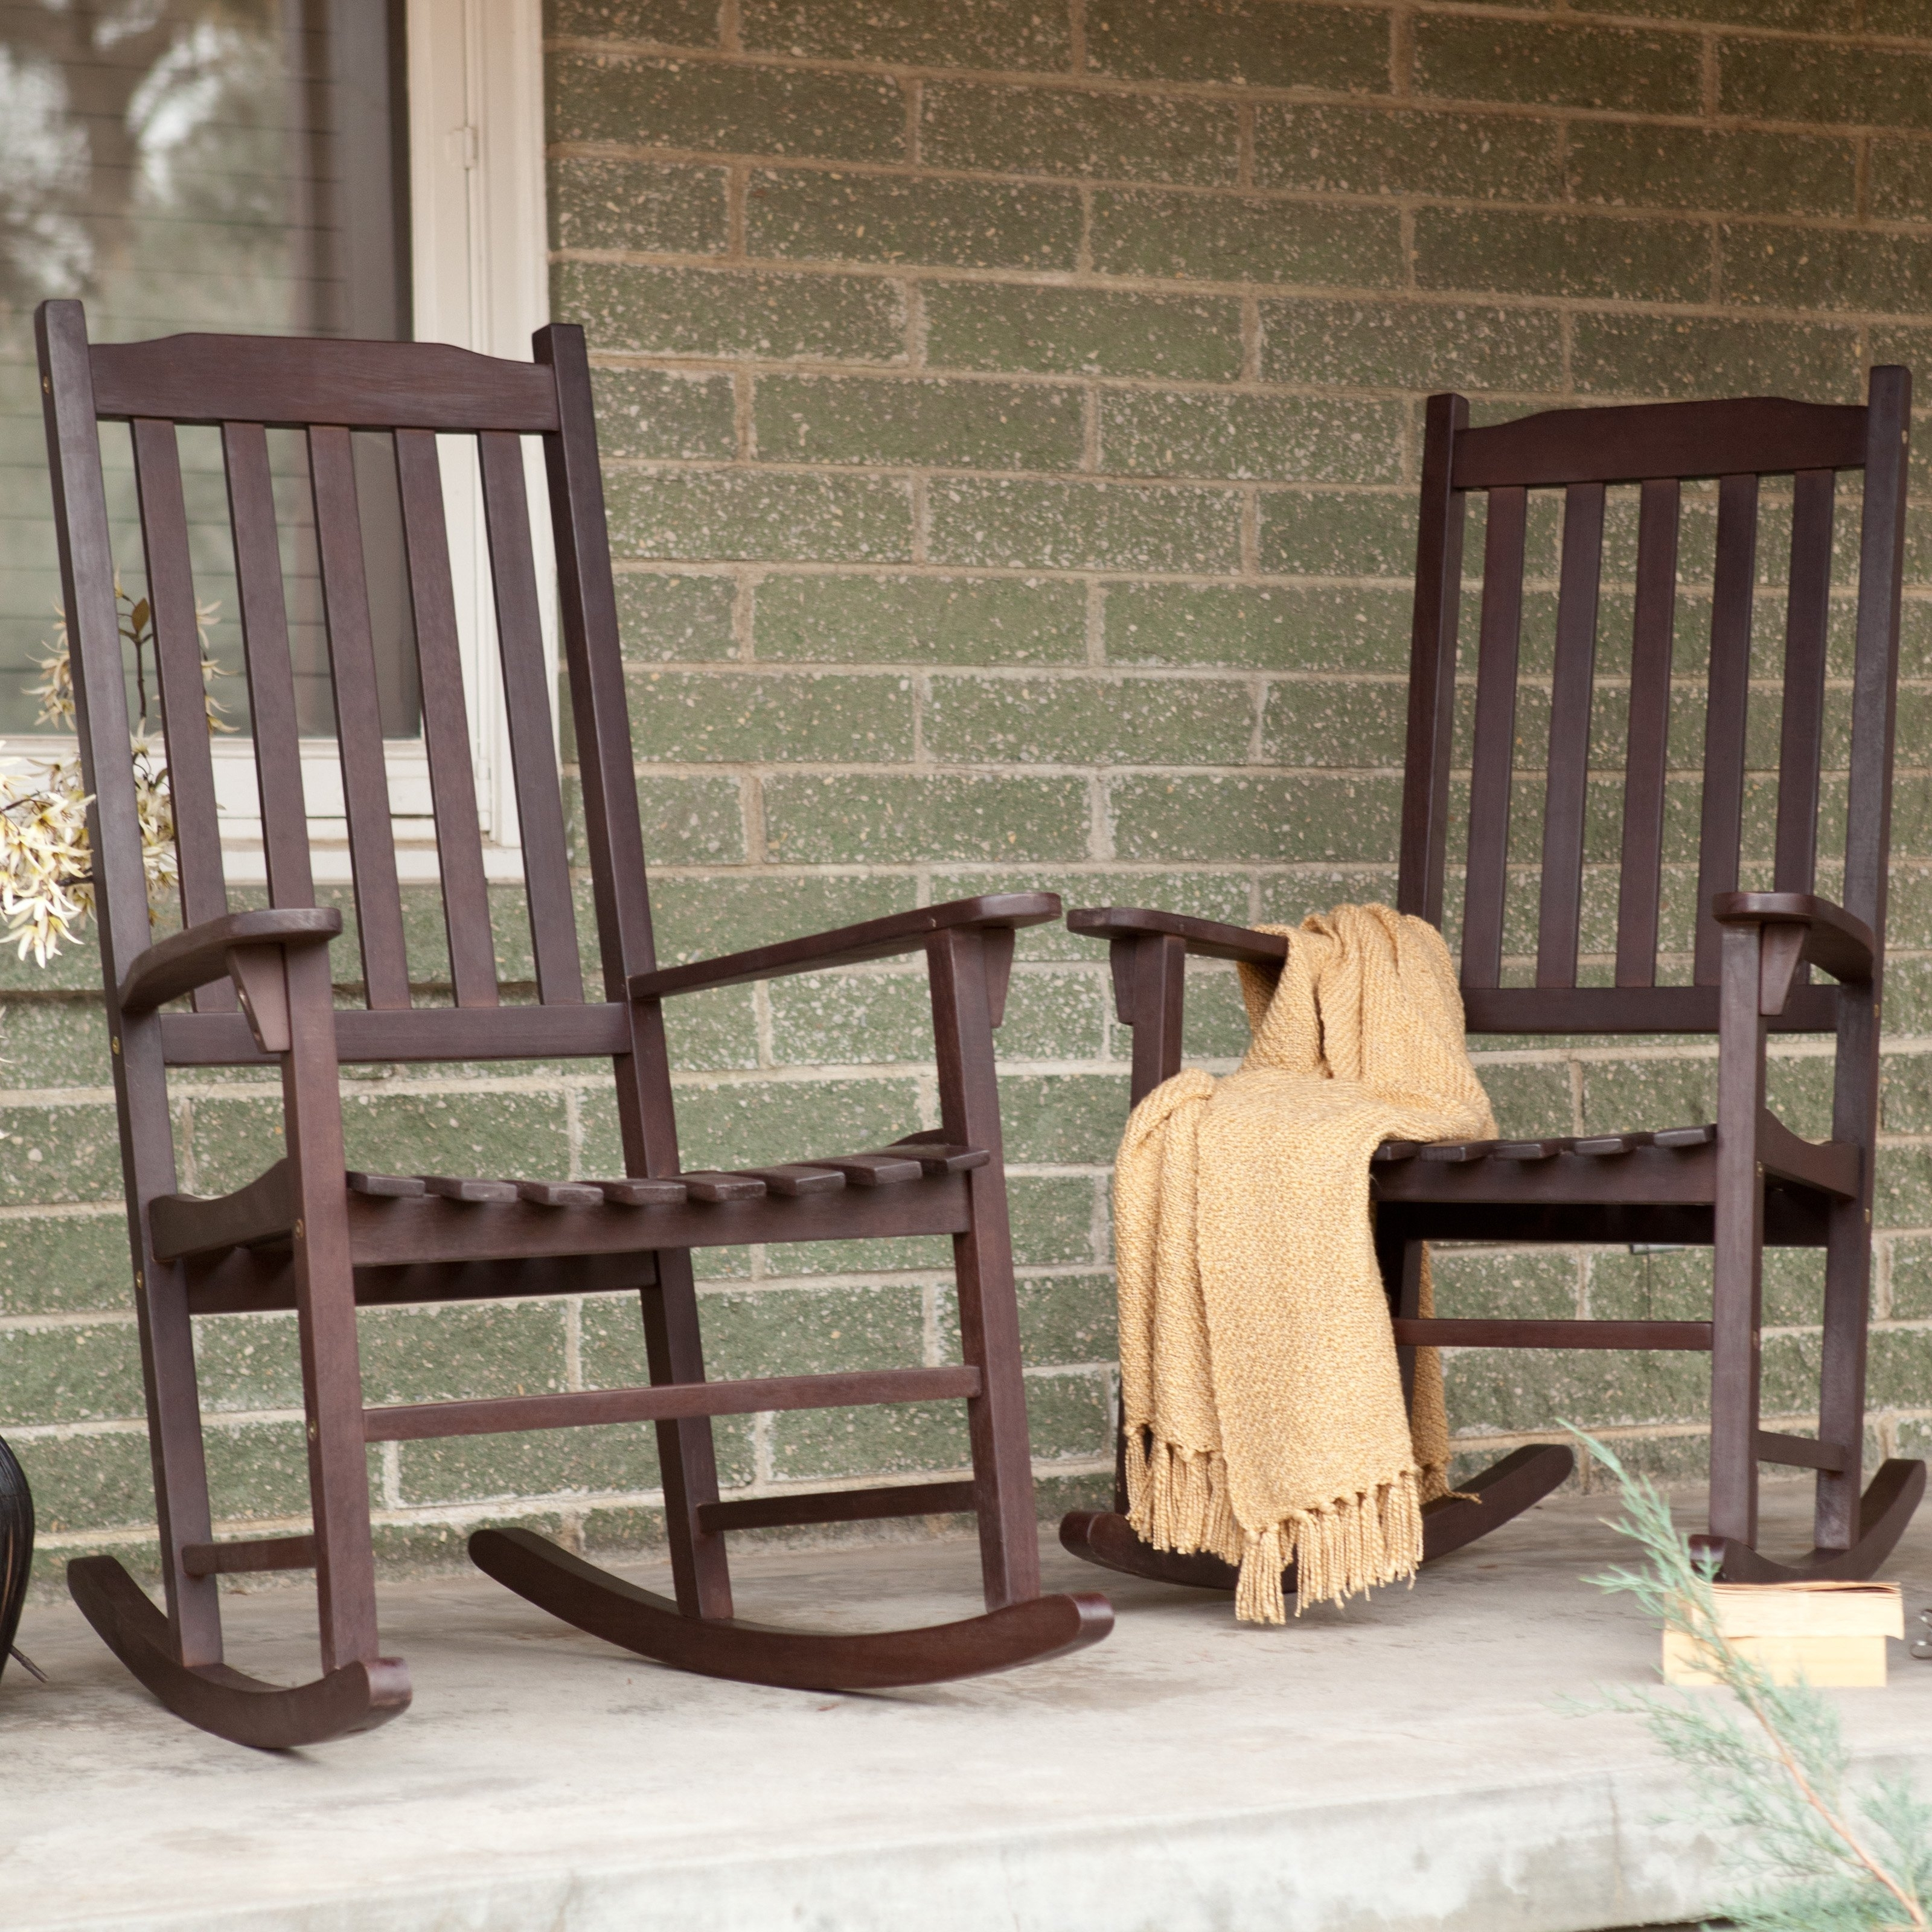 How To Choose Comfortable Outdoor Rocking Chairs – Yonohomedesign For Latest Outdoor Patio Rocking Chairs (View 6 of 15)